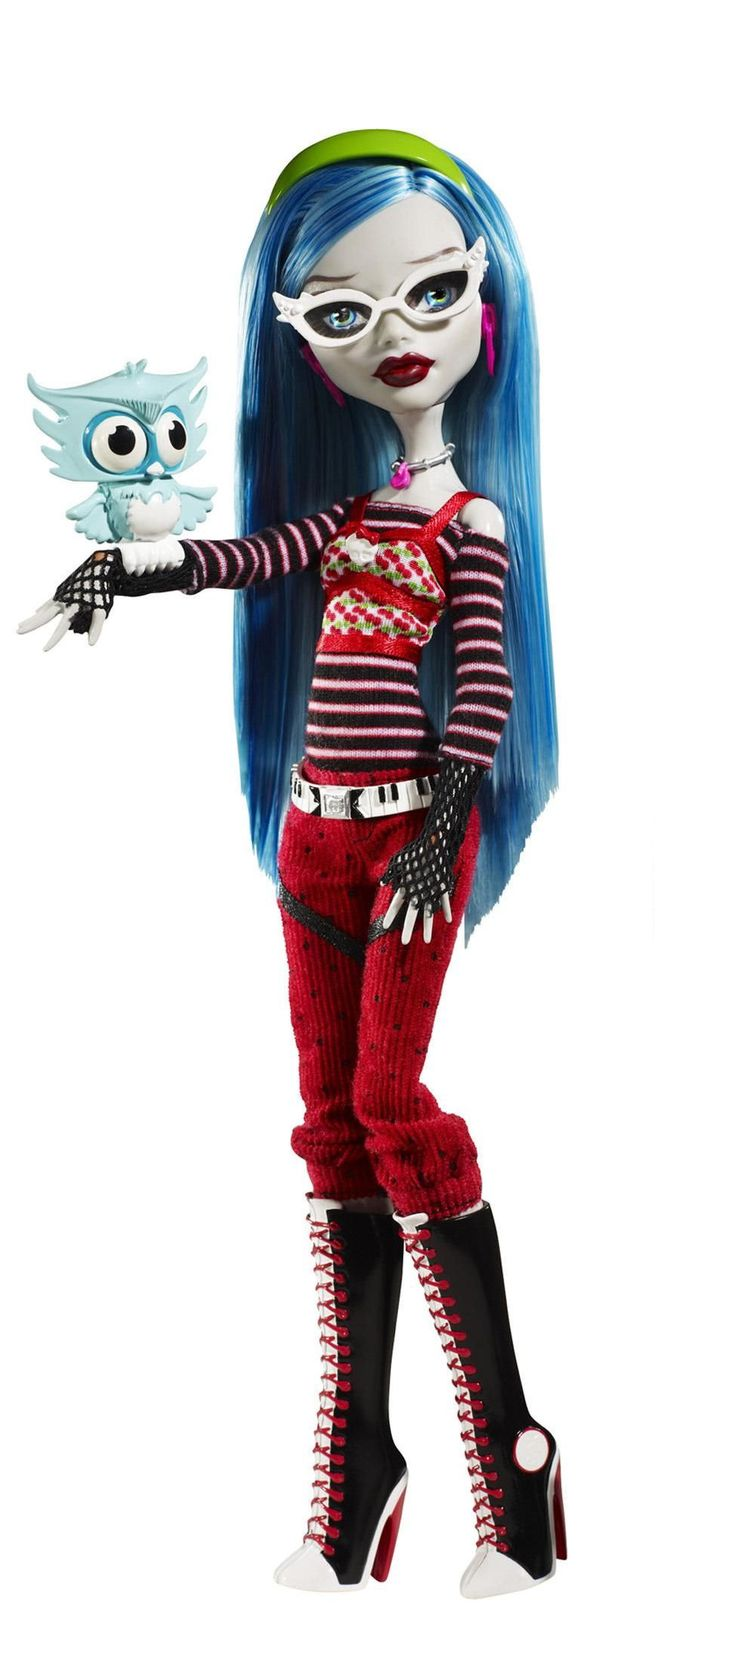 ghoulia yelps basic wave 2 school u0026 39 s out mattel monster